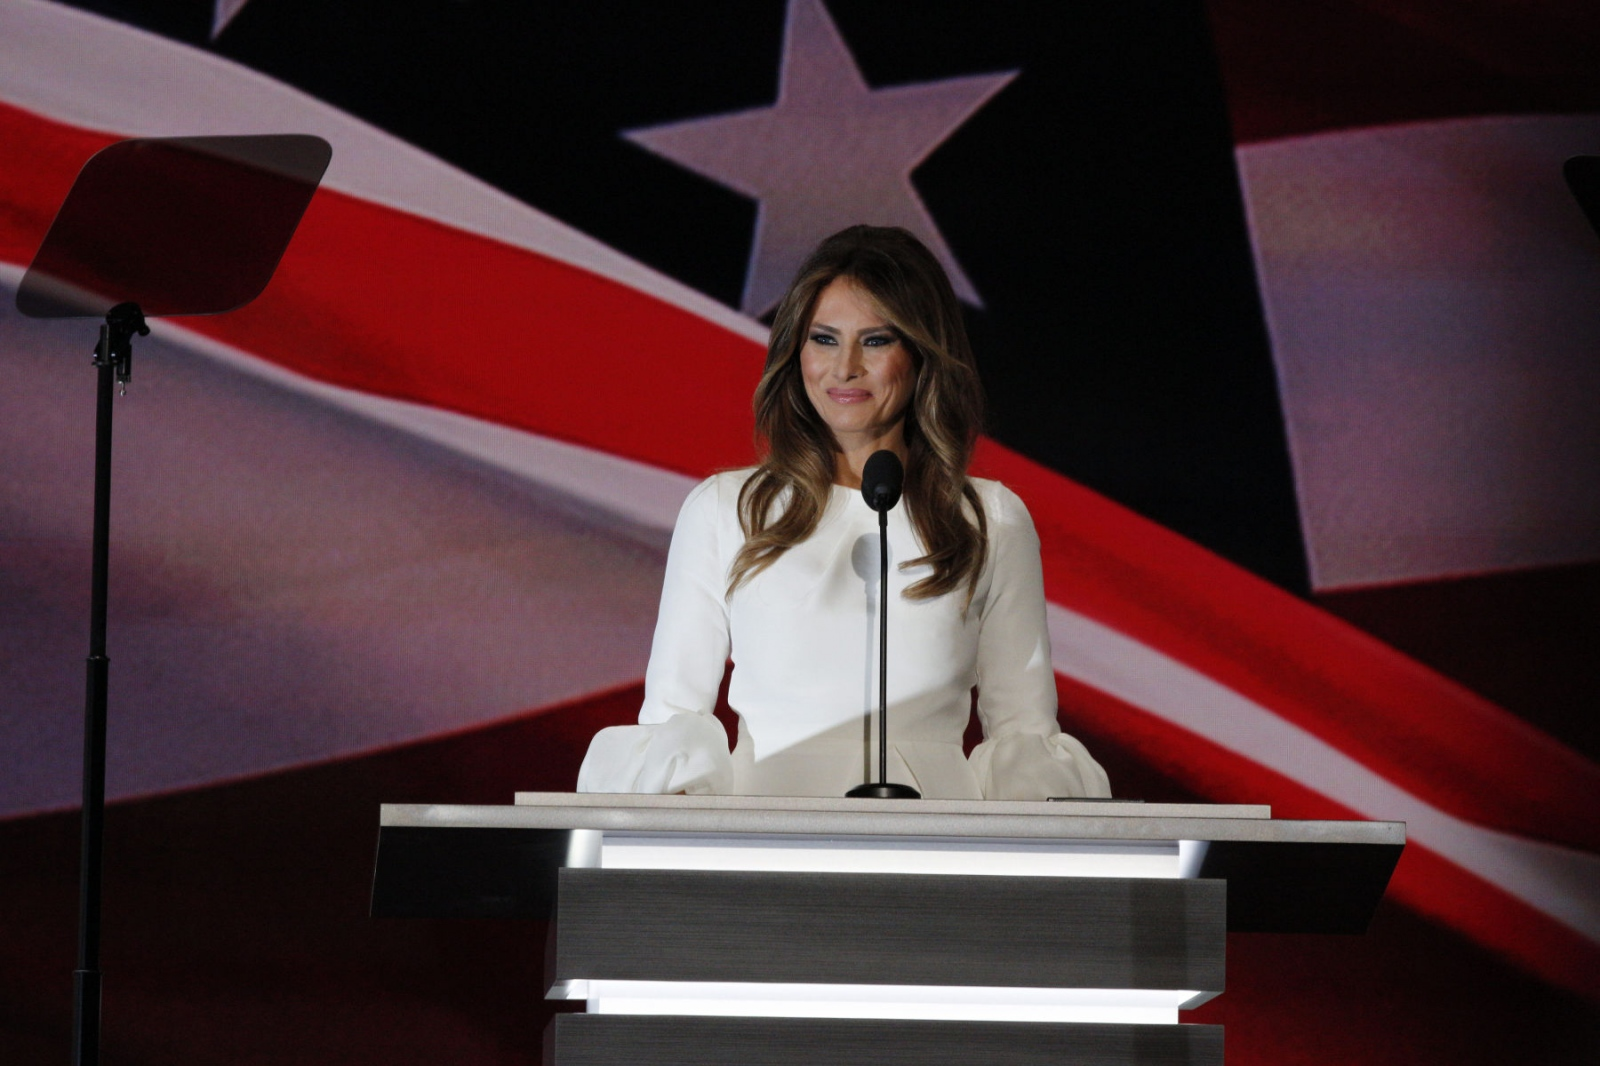 Melania Trump on stage to talk about Donald Trump her husband and to tell the crowd that her husband would be a great President of the United States at the Republican National Convention in Cleveland, Ohio. At that time, the speech plagiarised Michelle Obama's speech. July 19, 2016